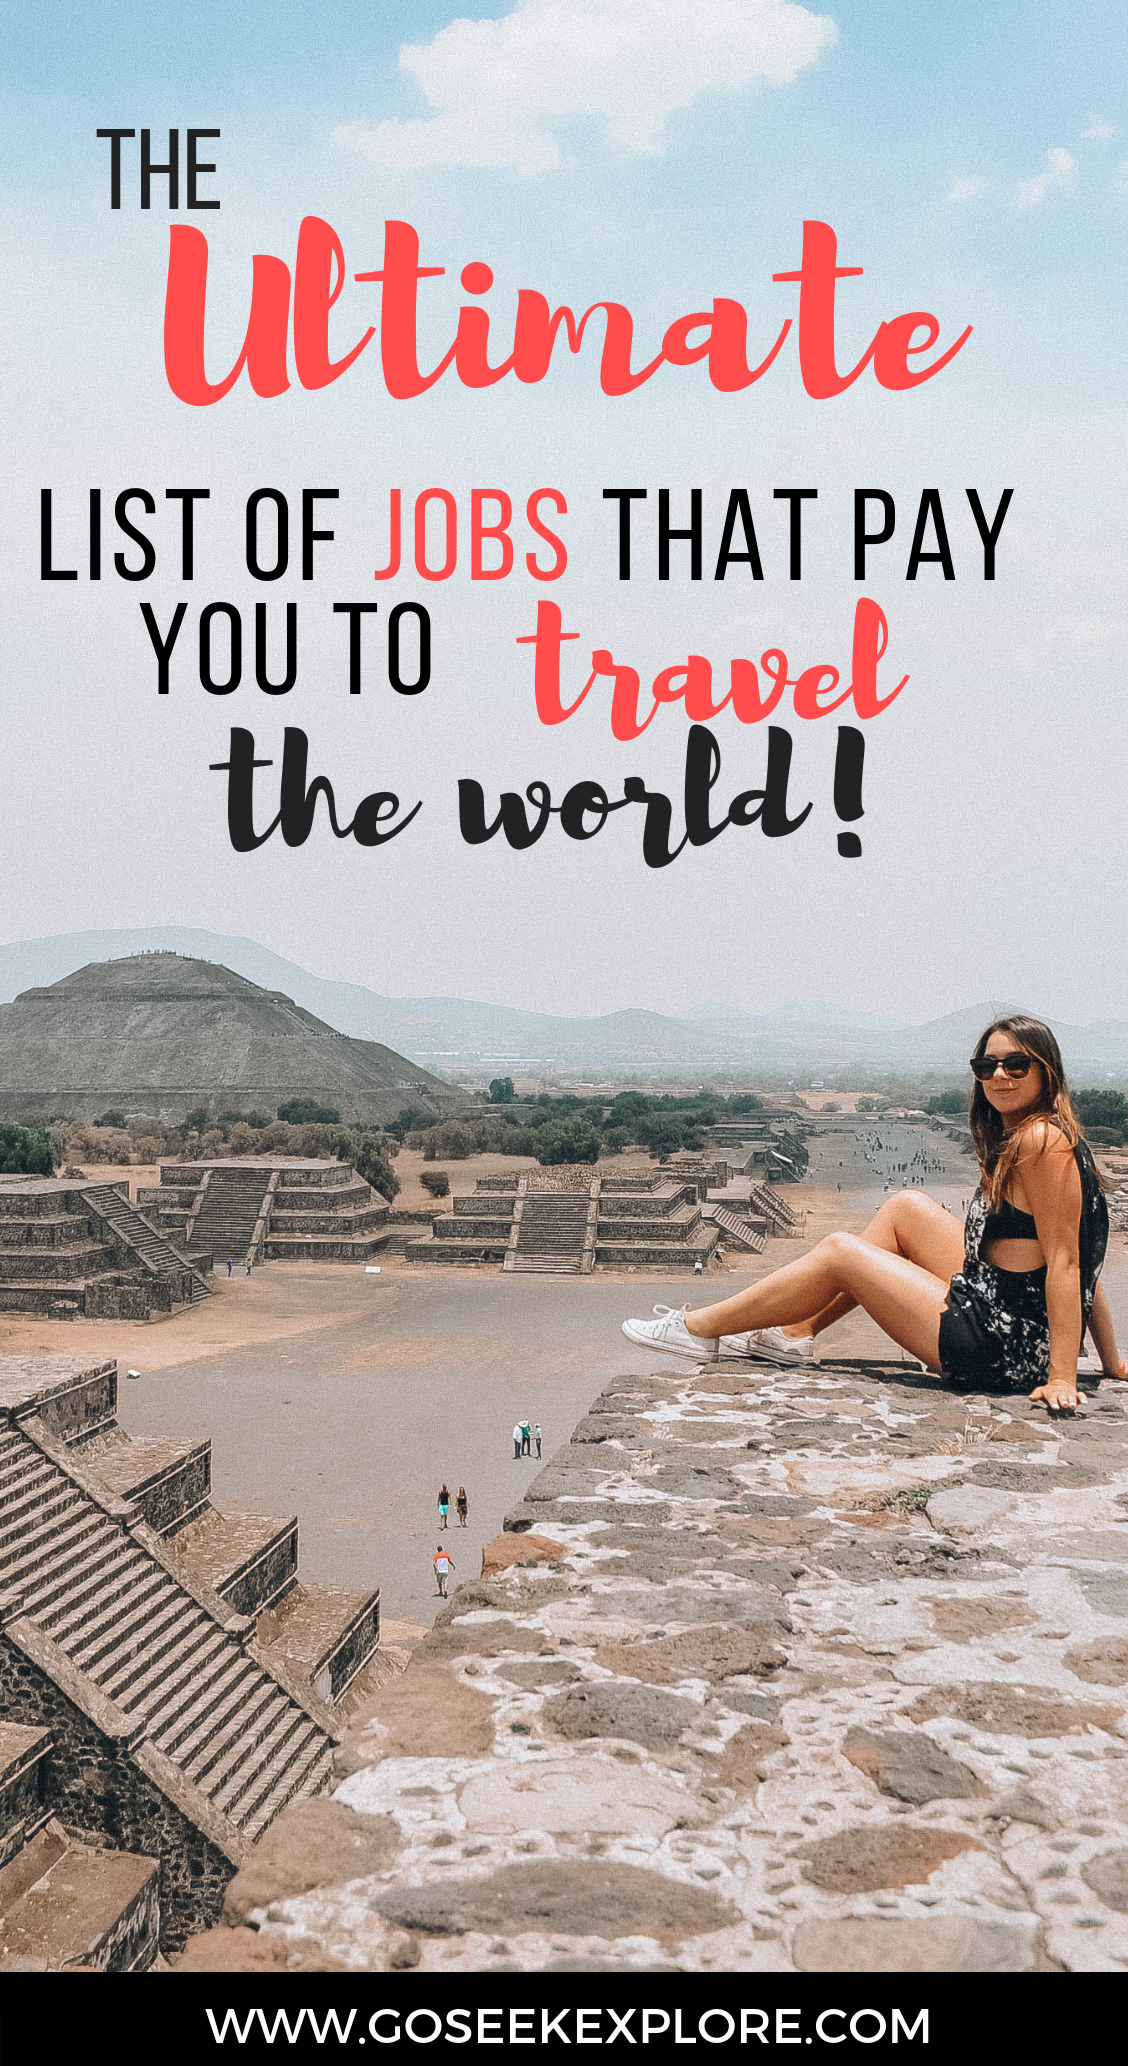 This article goes over plenty of real ways to travel the world while getting paid! Really helpful if you want to travel the world but don't have money or are looking to make travel your career. The Ultimate  List of Jobs that Pay You To Travel the World! How to get started, find what's out there, and figure out which opportunity is best for you to get paid to travel! / Go Seek Explore / GoSeekExplore.com / The-Ultimate-List-of-Jobs-That-Pay-You-To-Travel-the-World-V2 (3).png